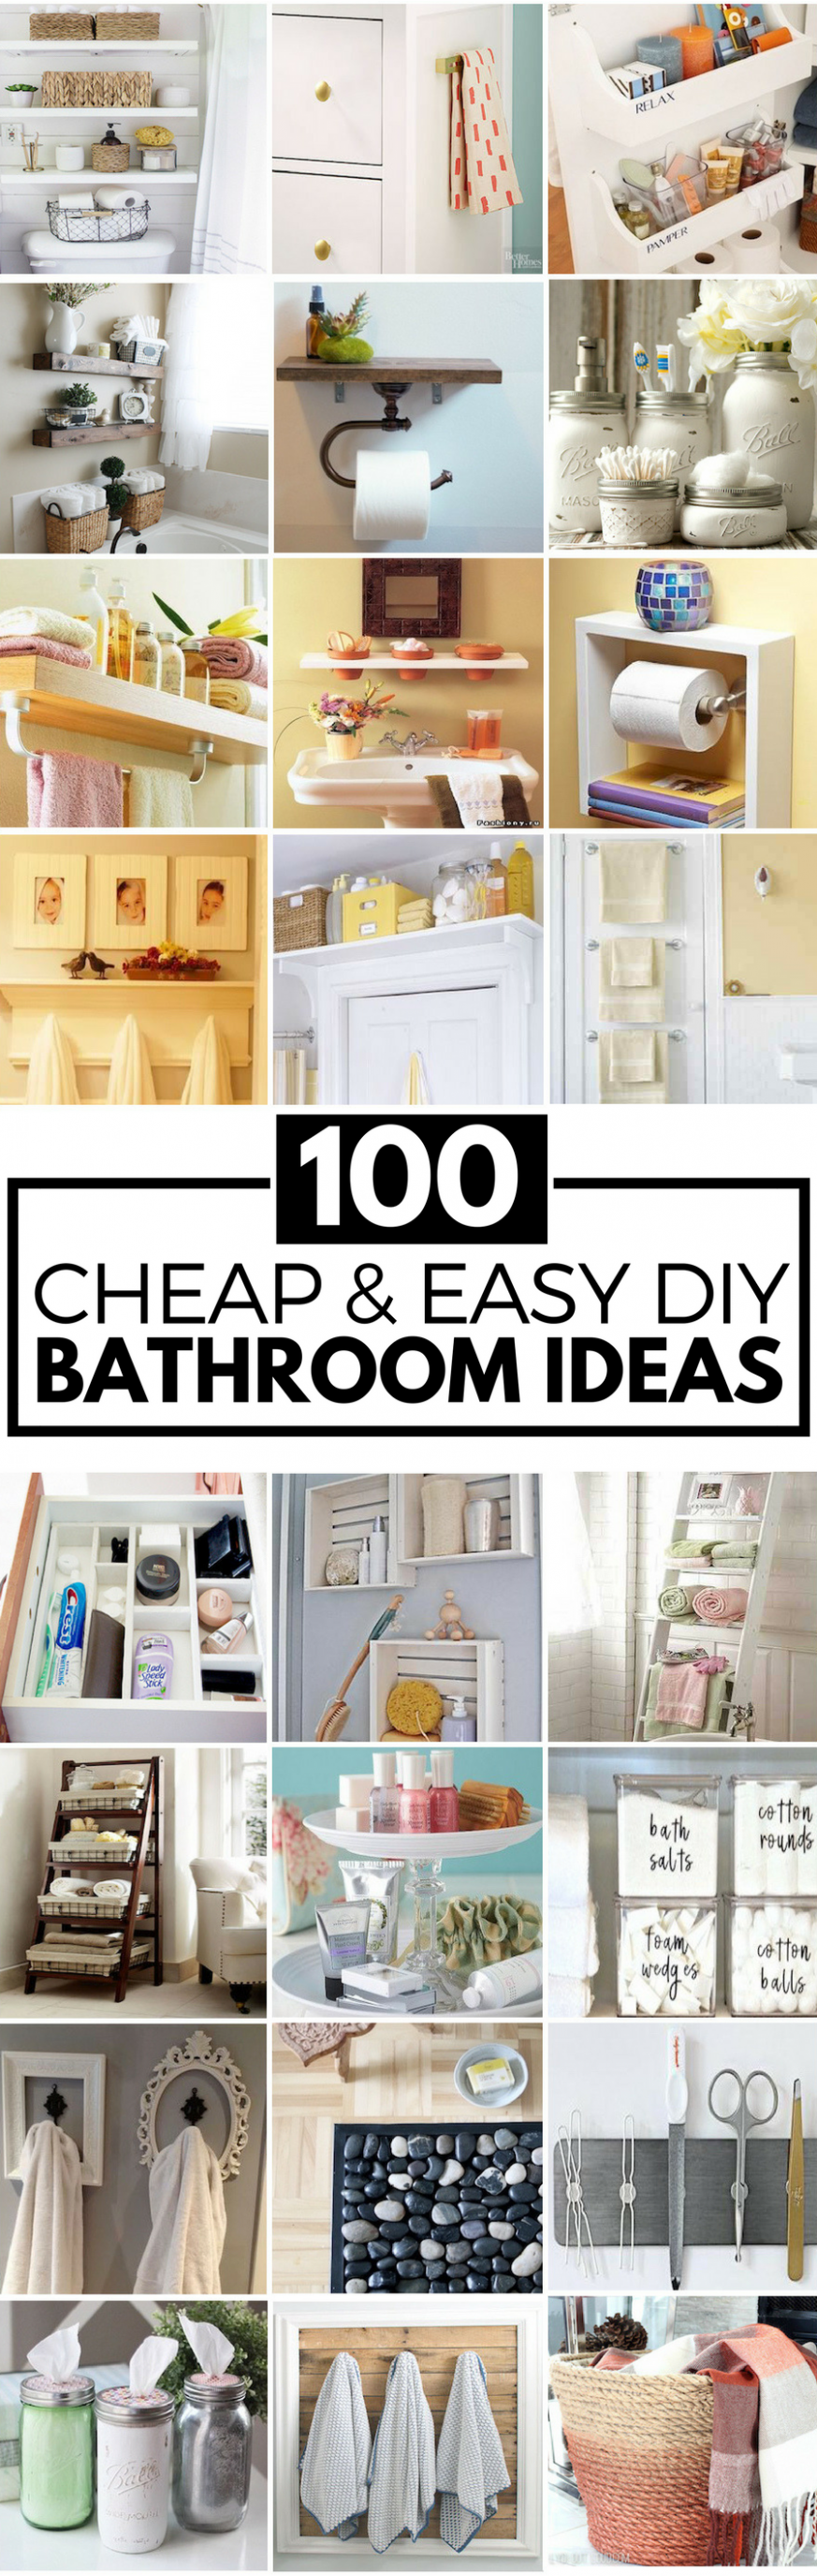 11 Cheap and Easy DIY Bathroom Ideas (With images) | Diy bathroom ..